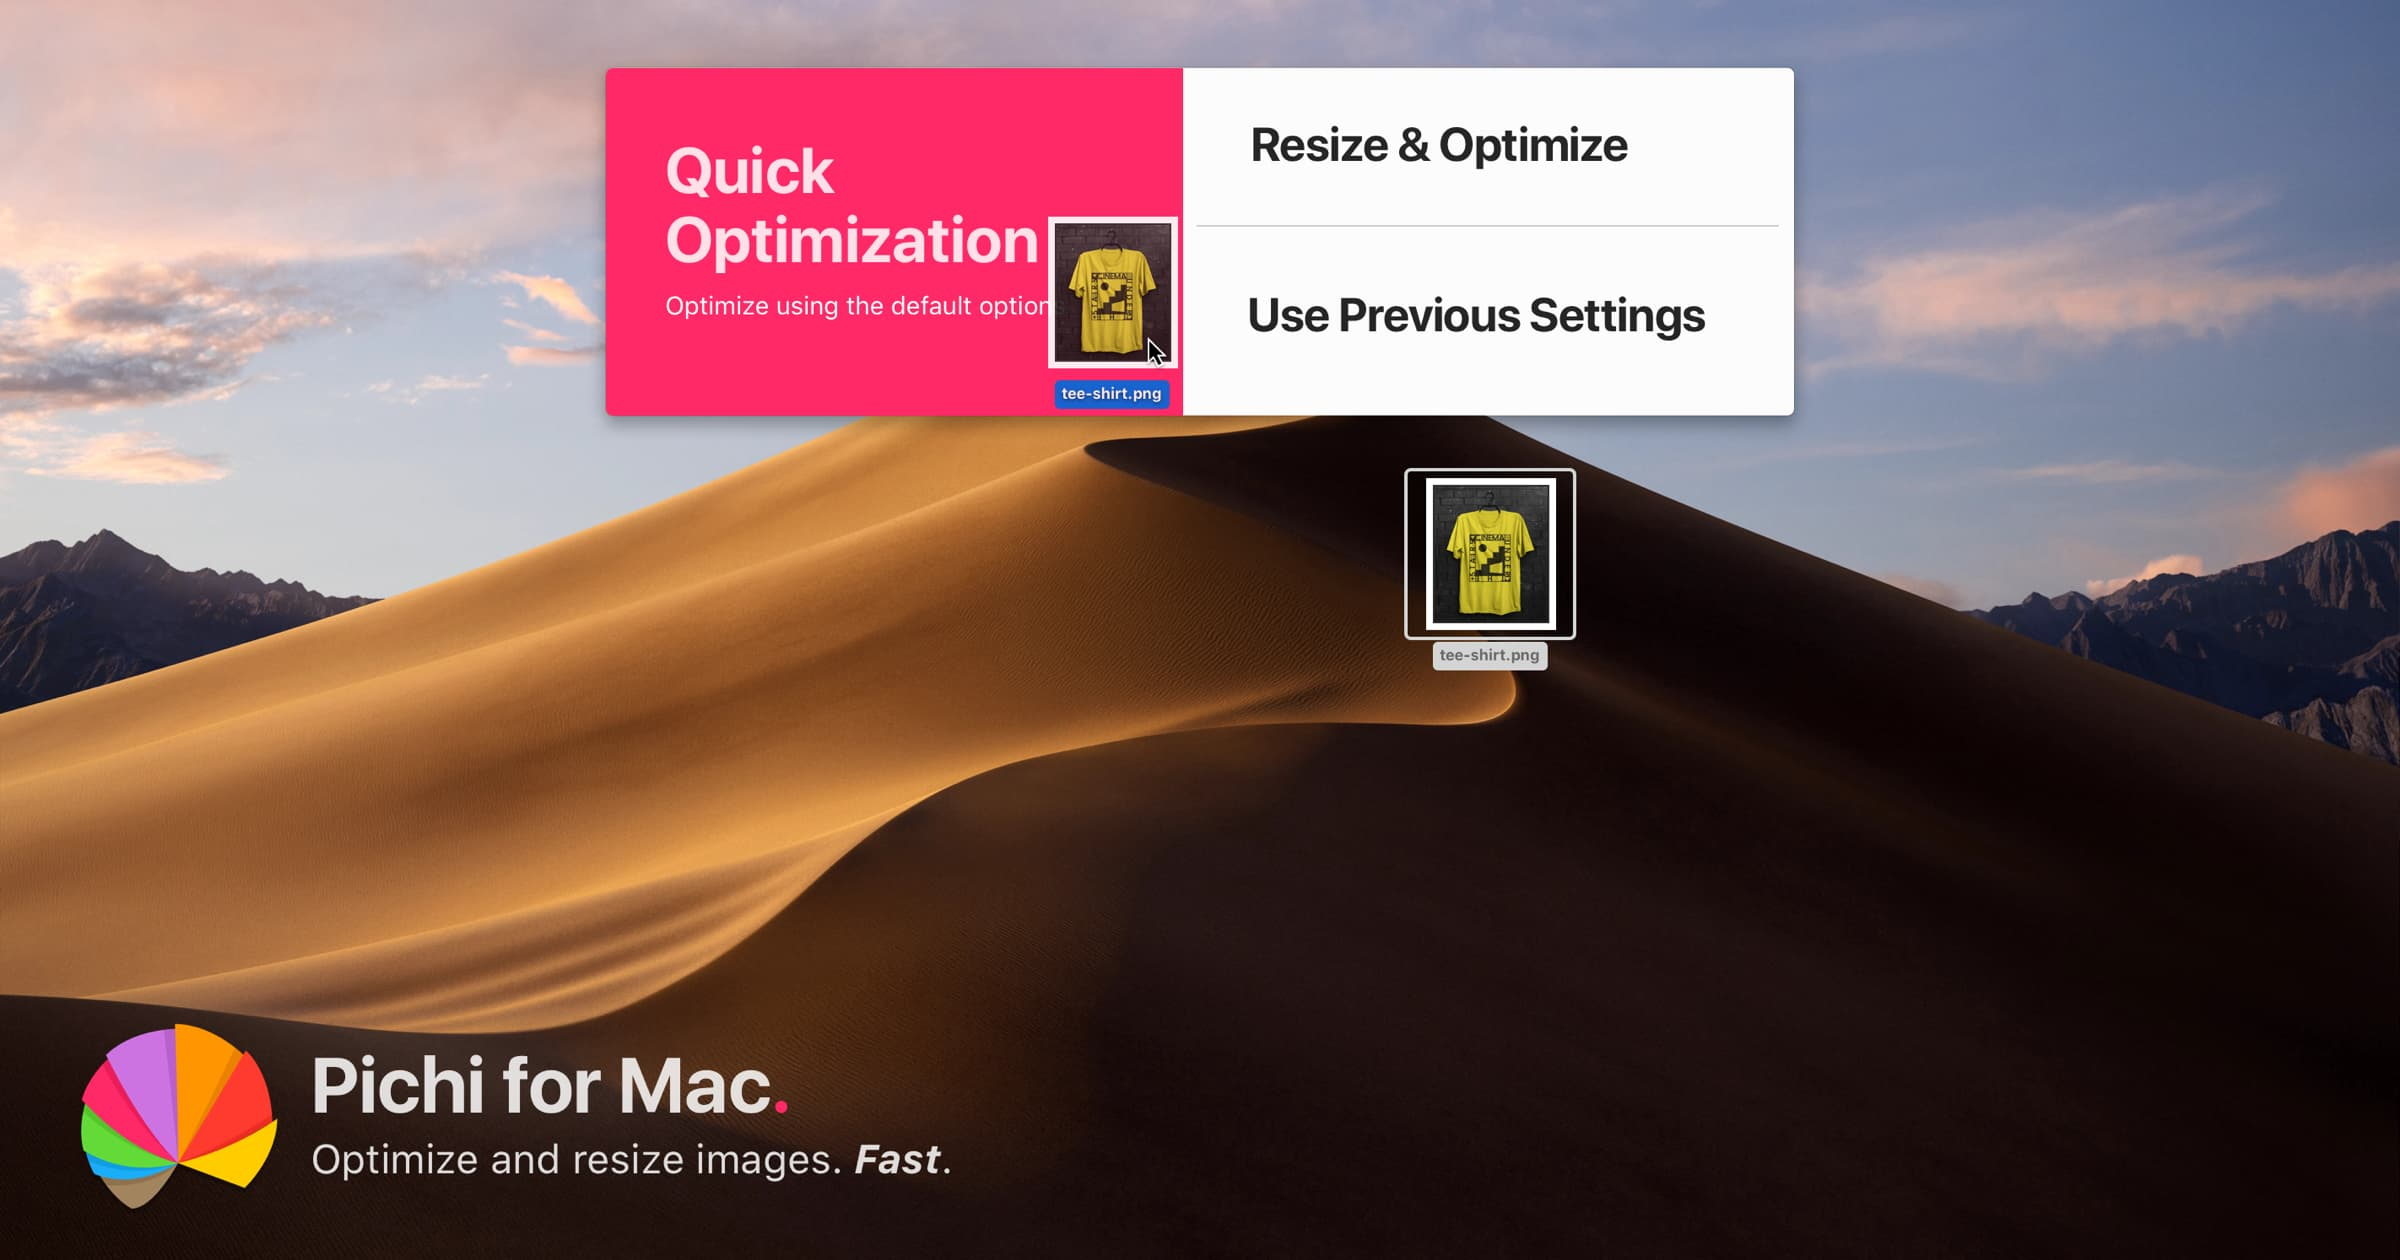 Pichi for Mac - Optimize and resize your images without taking a hit in quality